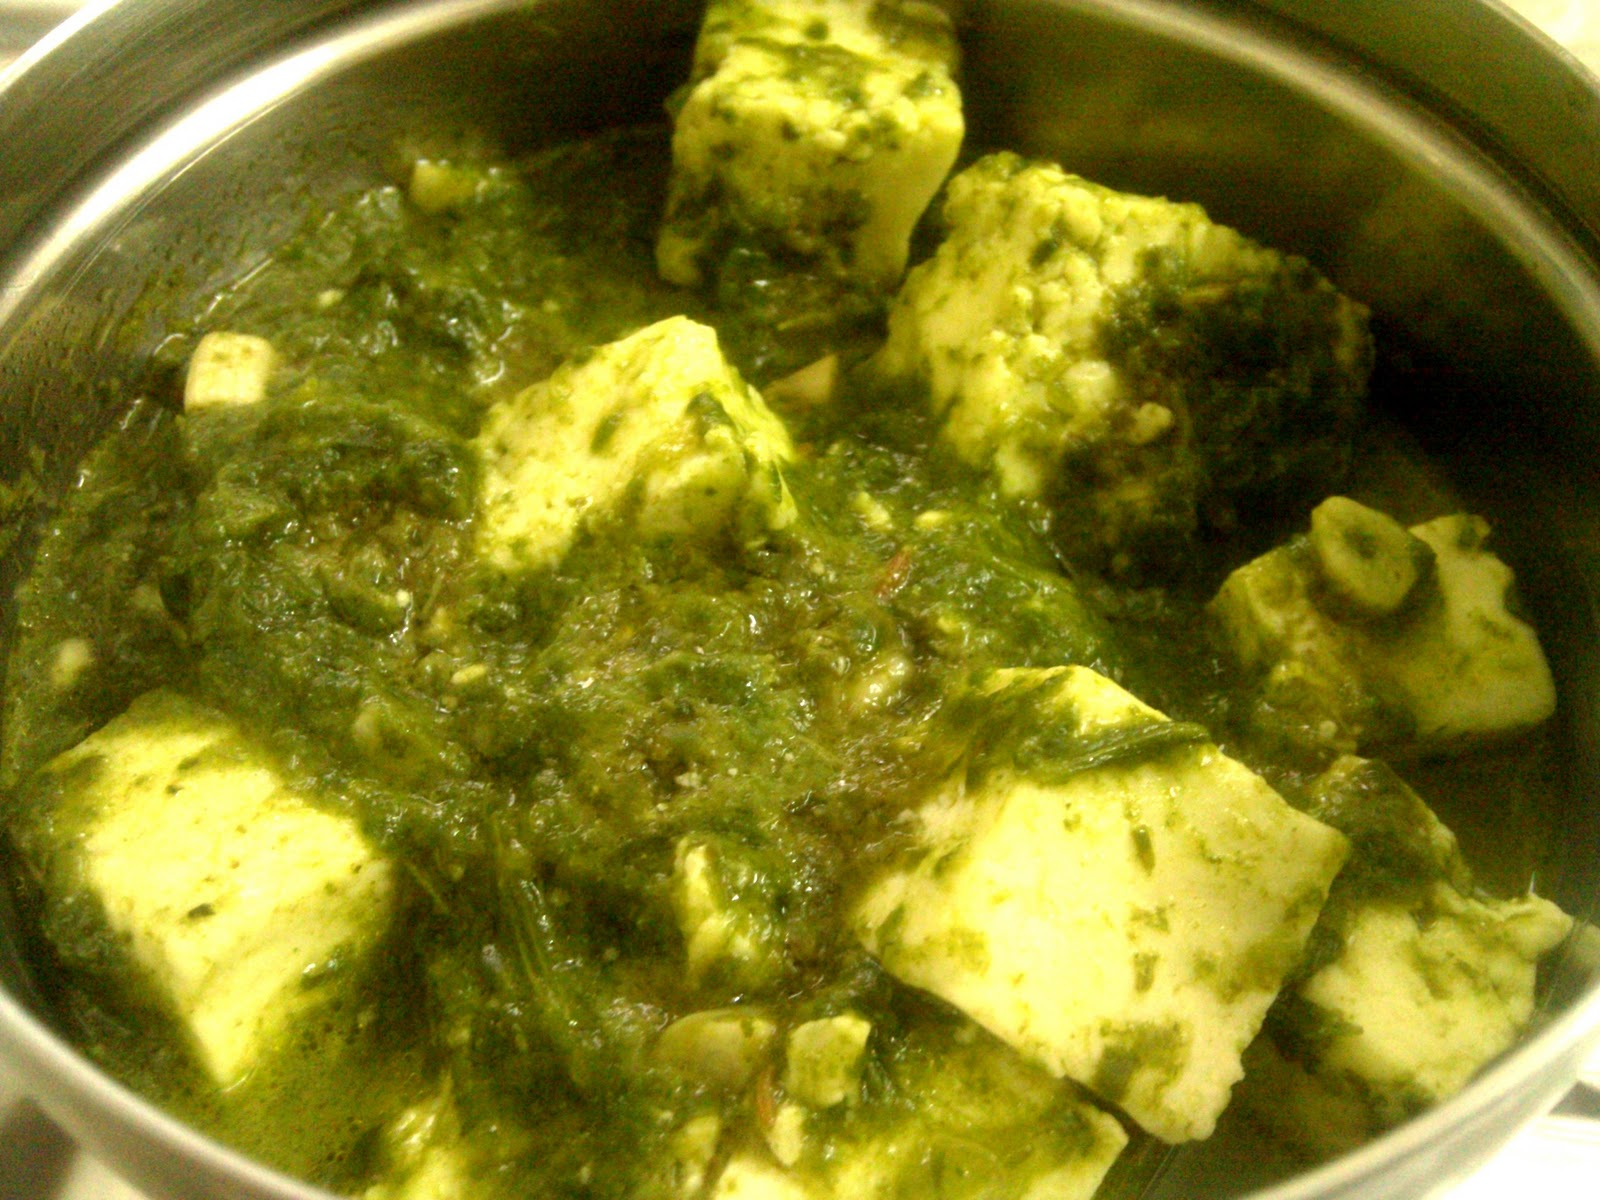 Palak paneer recipes in hindi by sanjeev kapoor hair blog palak paneer recipe sanjeev kapoor photo 7 sumthinz cooking subzi 10 minute super yum forumfinder Gallery